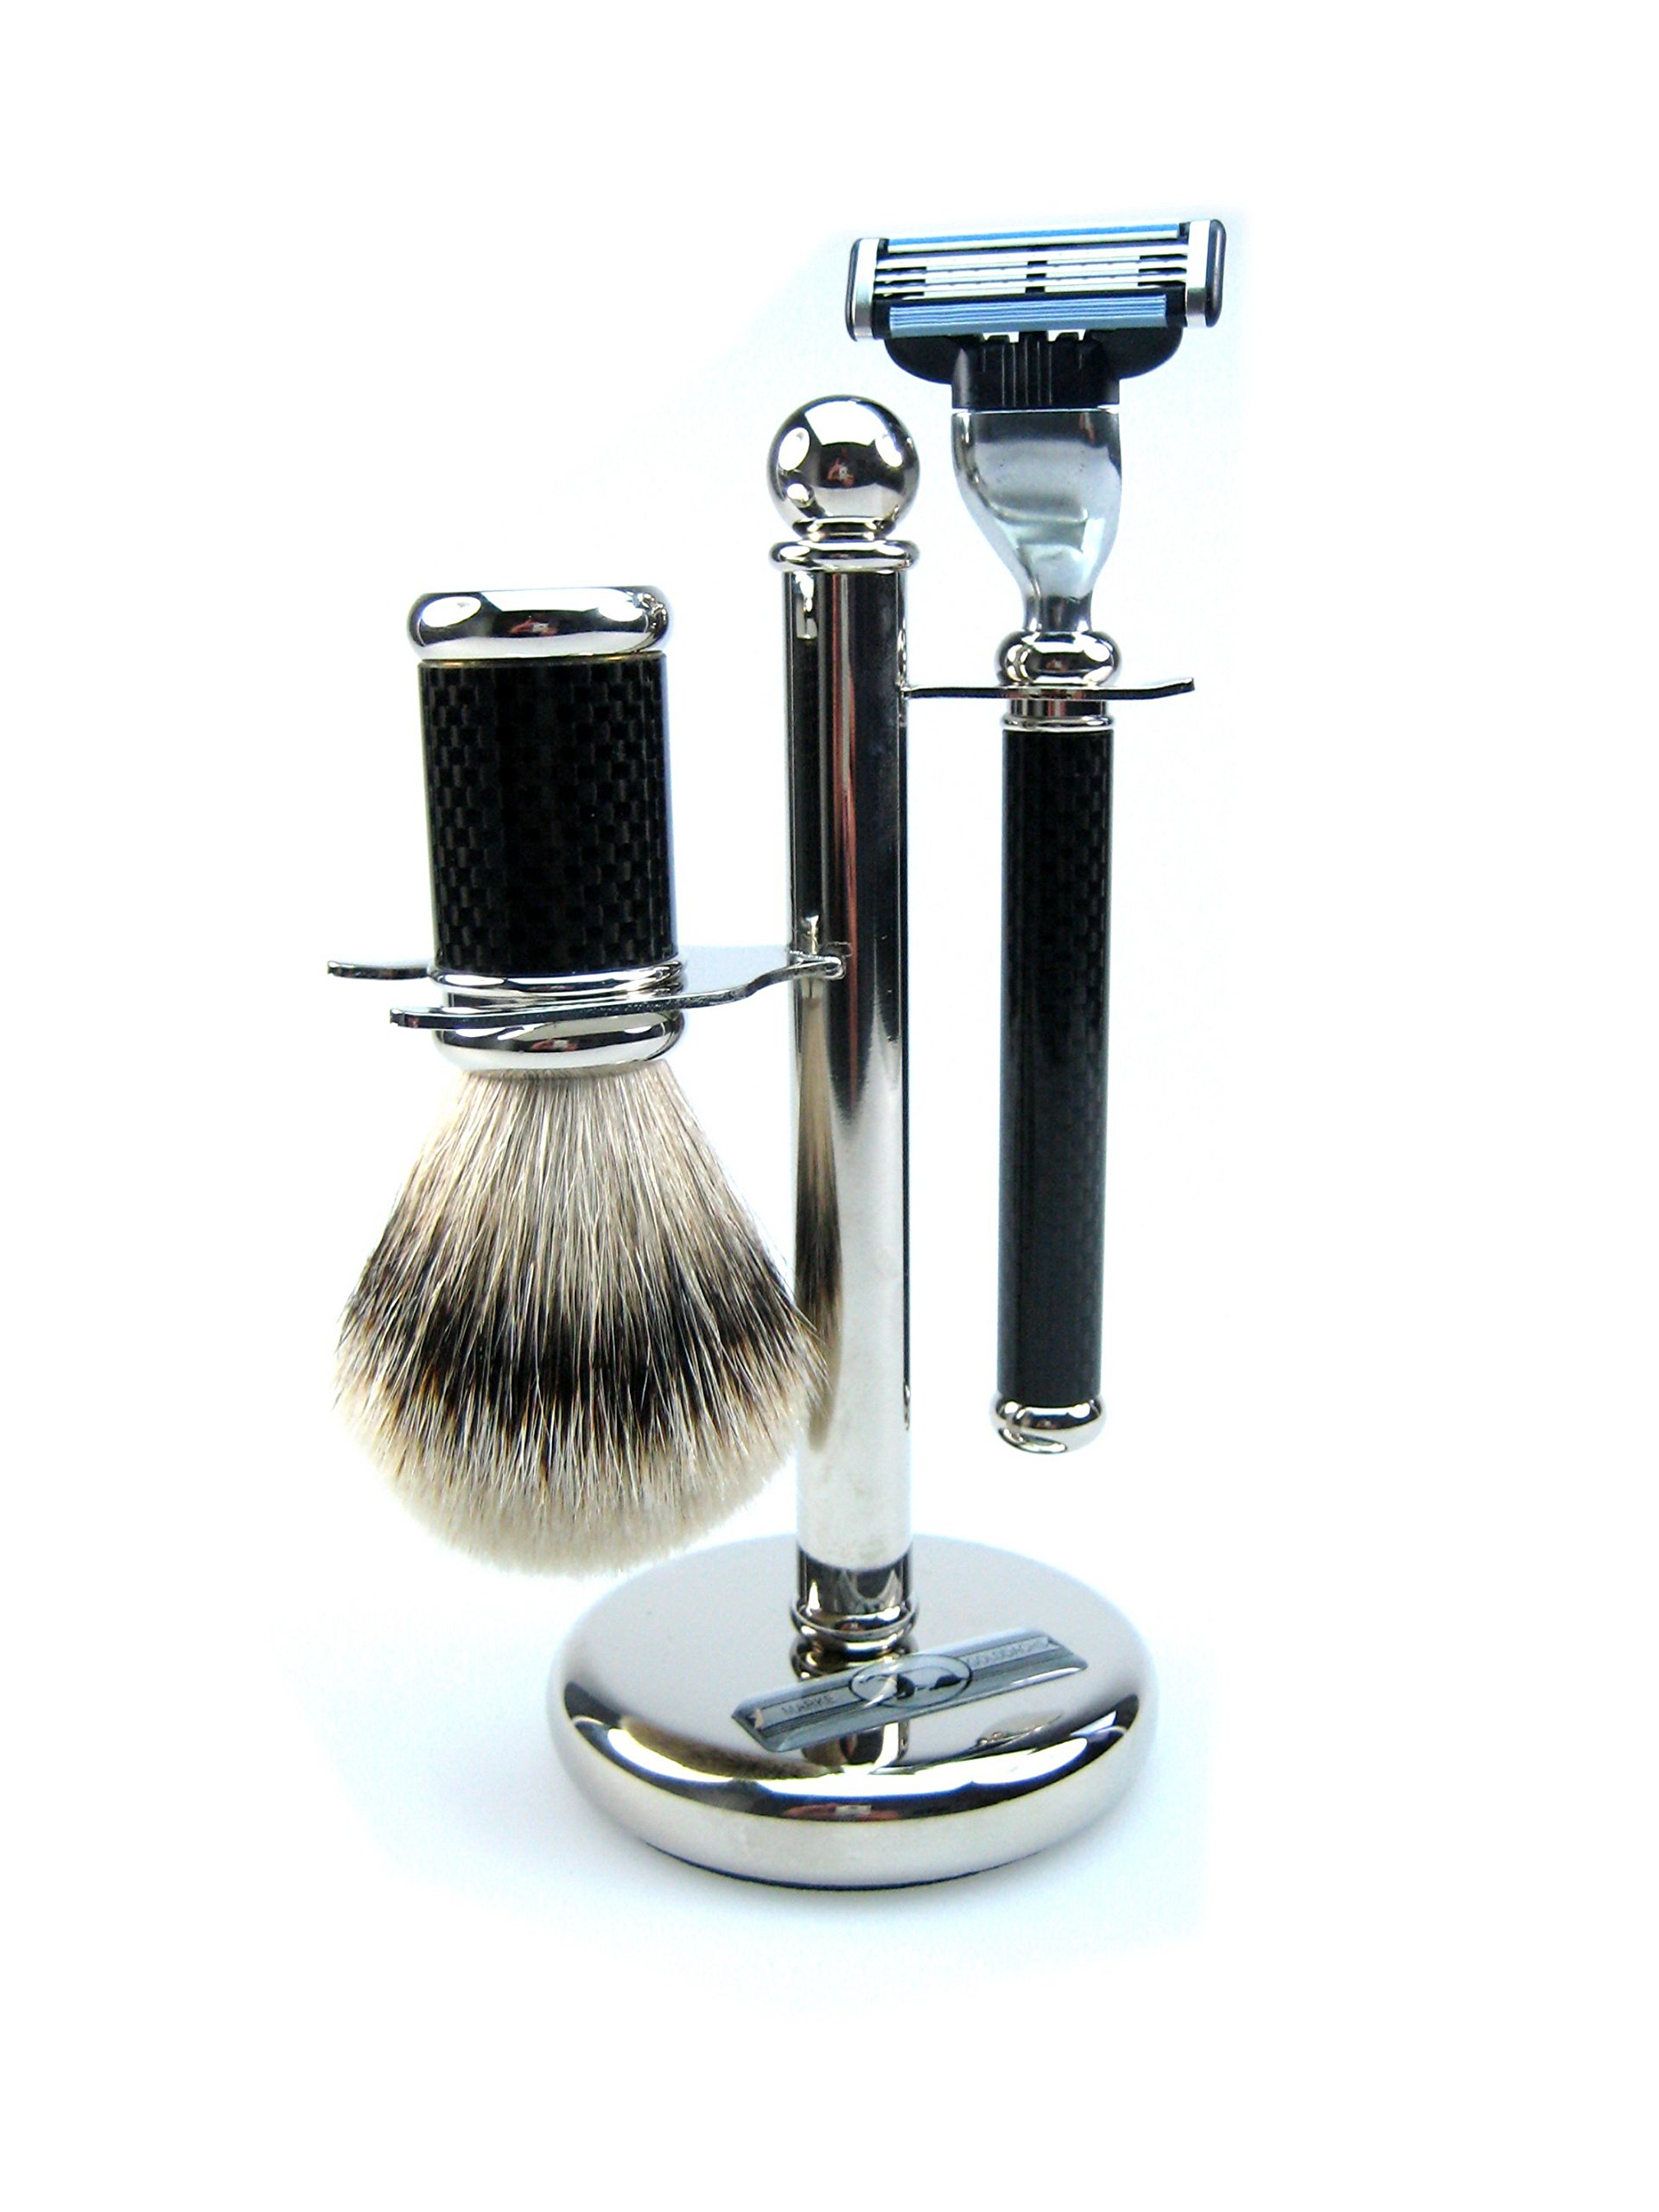 Golddachs Germany Shaving Set, Mach3 Handle, Finest Badger Brush, Carbon Optic, Stand, Made In Germany, 3 Piece